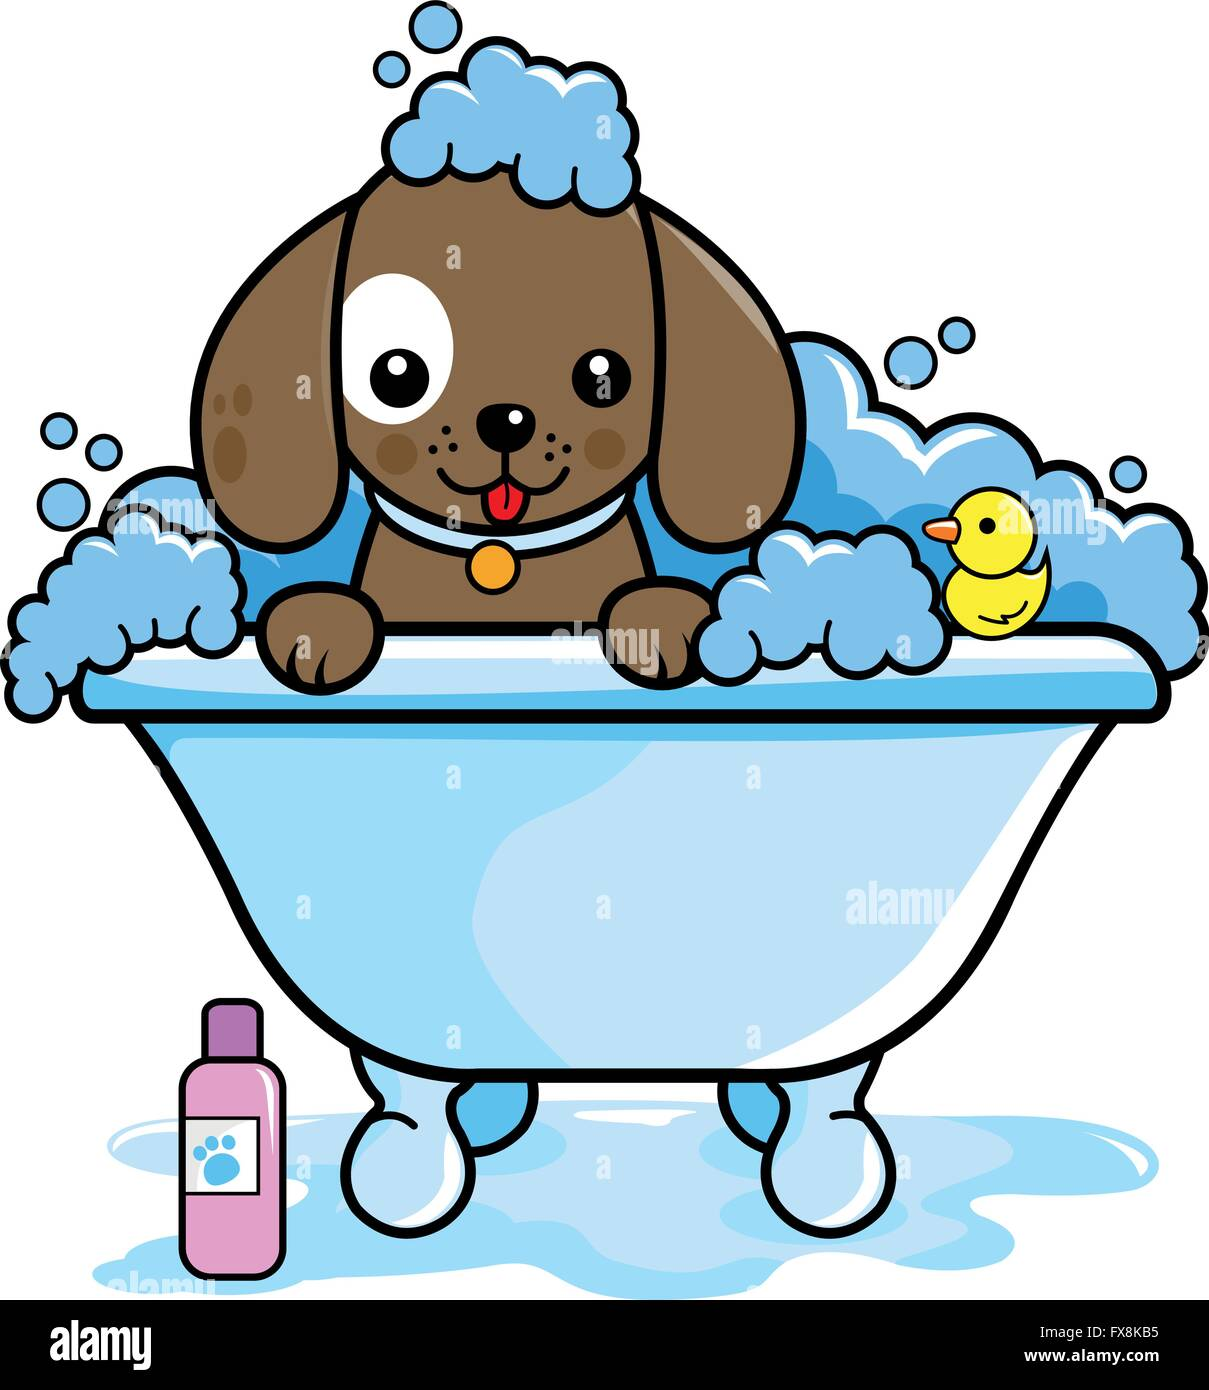 Bath Bubbles Cartoon Free Vector Graphic On Pixabay: Dog In A Tub Taking A Bubble Bath Stock Vector Art